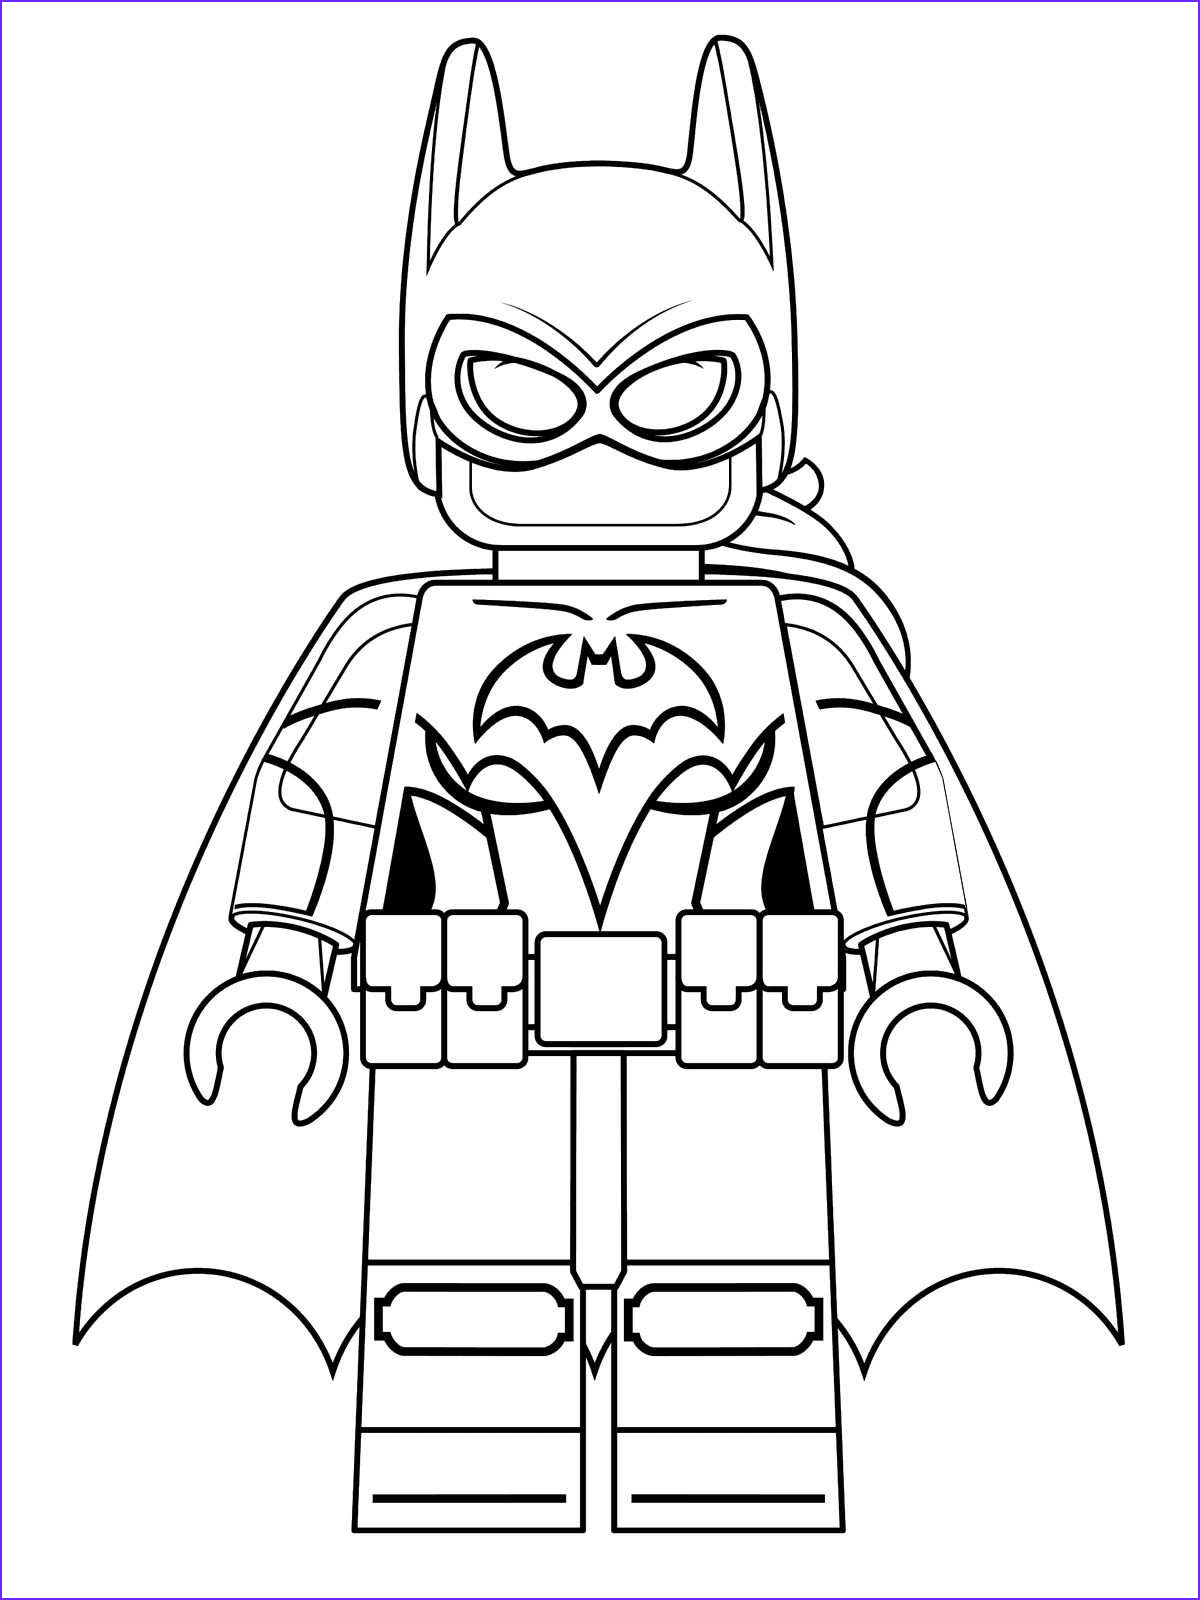 Lego Coloring Sheet New Photos Lego Batman Coloring Pages Best Coloring Pages for Kids